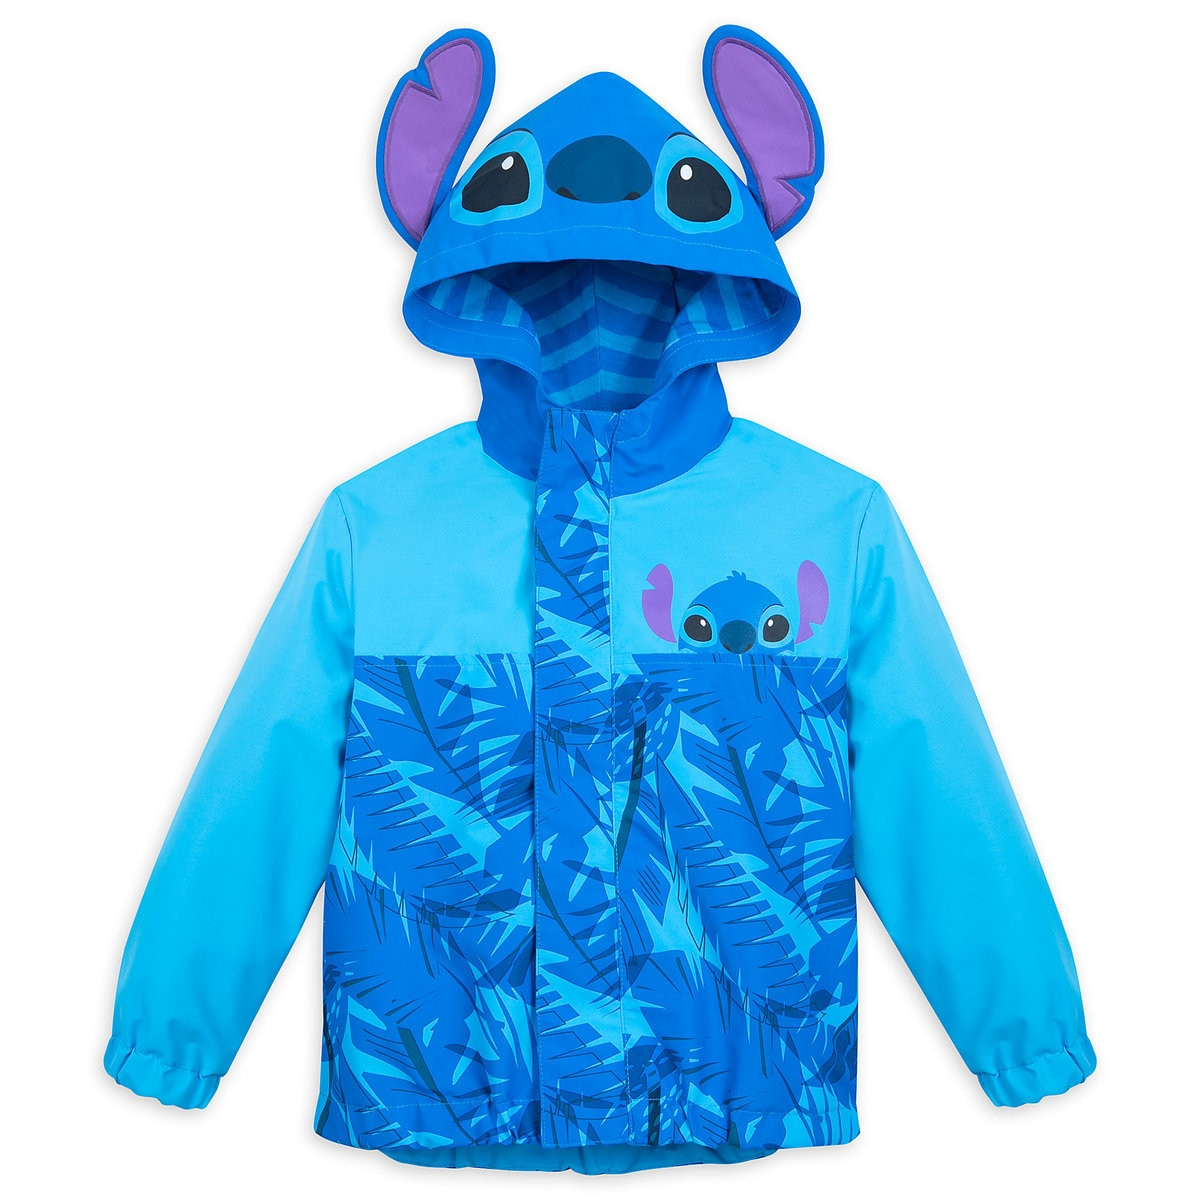 4e1c5aee9 Product Image of Stitch Packable Rain Jacket and Attached Carry Bag for Kids  # 1